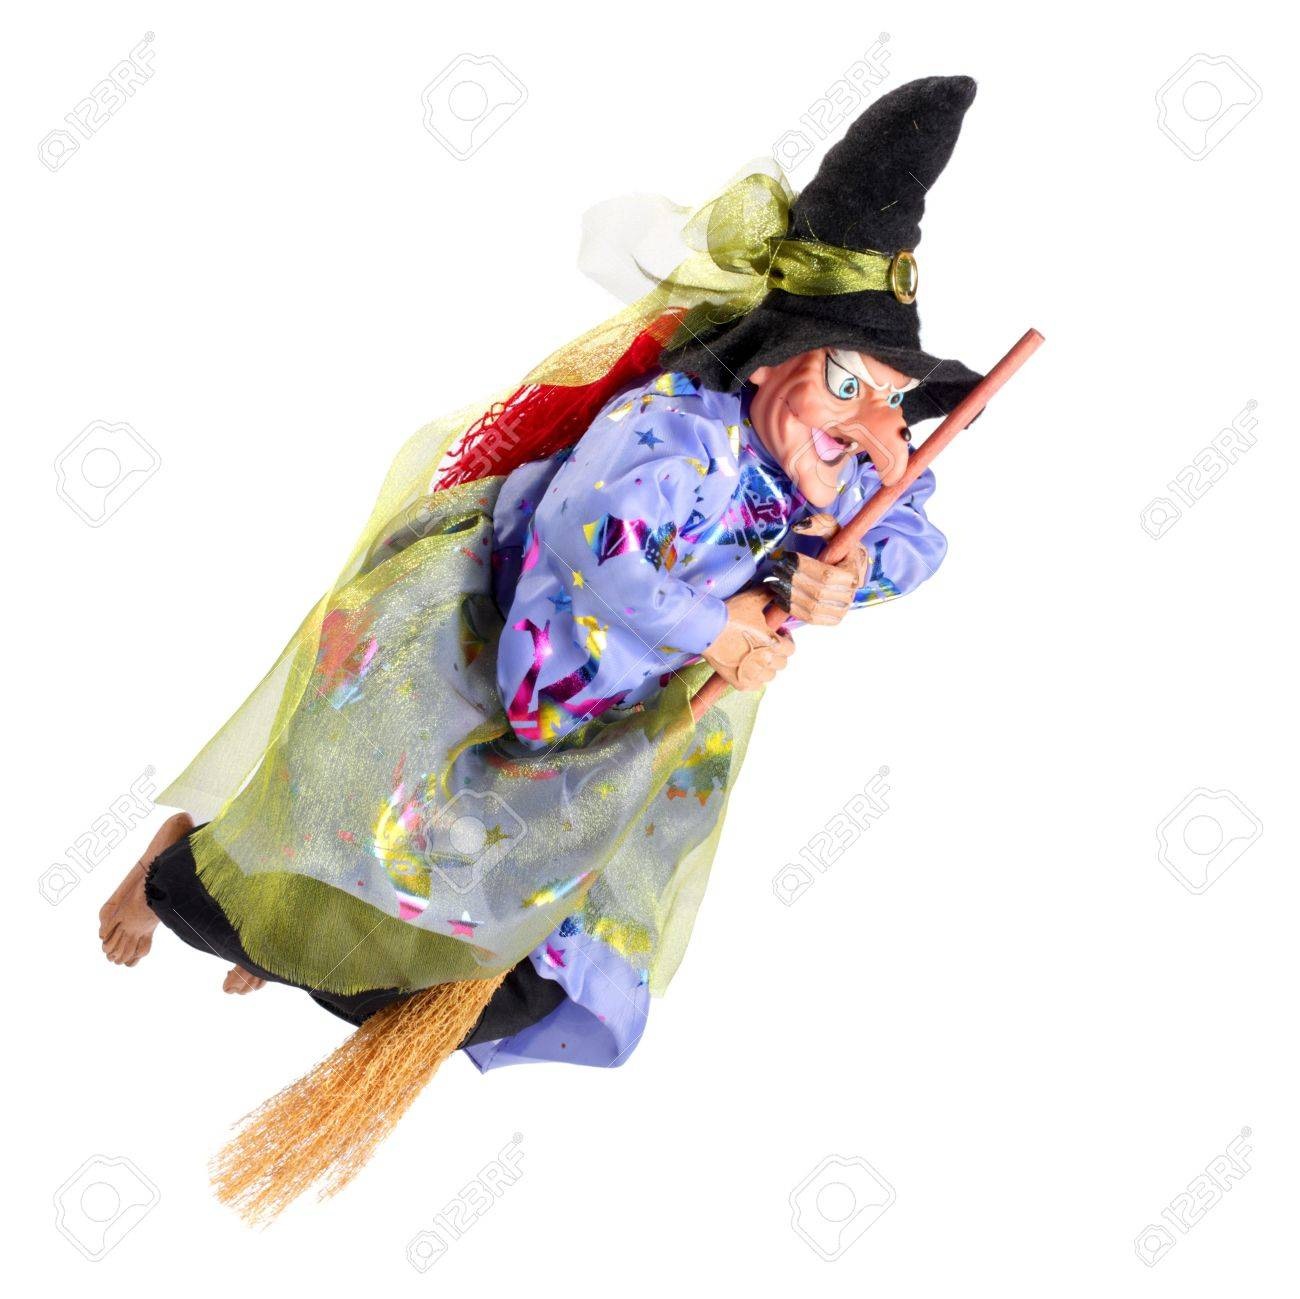 Flying Broom Stock Photos & Pictures. Royalty Free Flying Broom ...